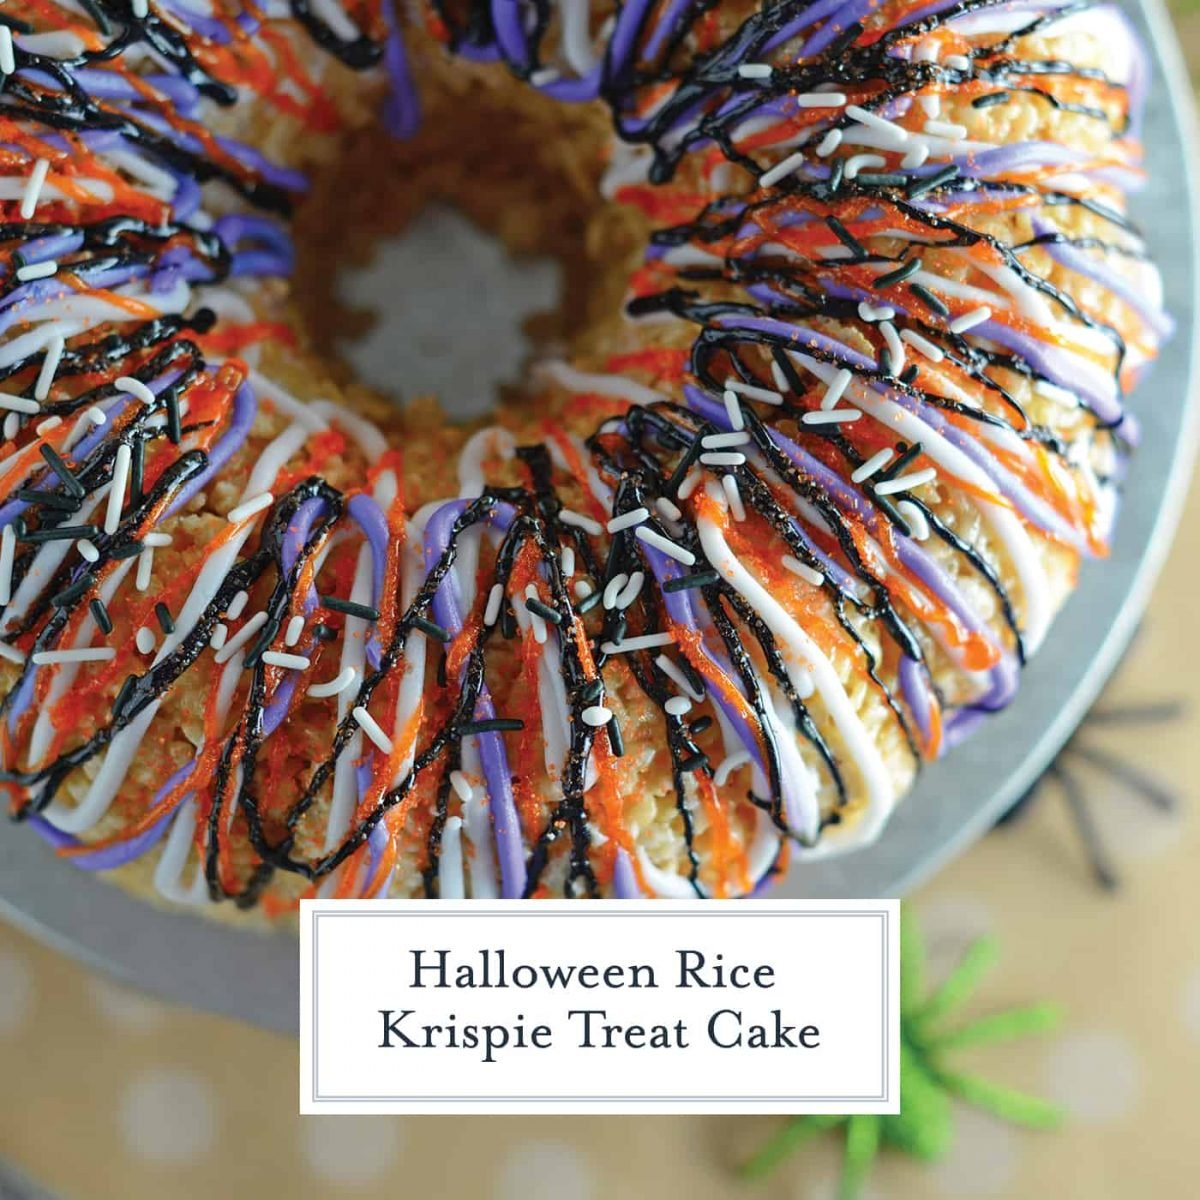 Halloween Rice Krispie Treat Cake is stuffed with fluff! What better way to celebrate the holiday than with a giant homemade rice krispies treat? #halloweenricekrispietreats #ricekrispietreatcake #halloweensnacks www.savoryexperiments.com